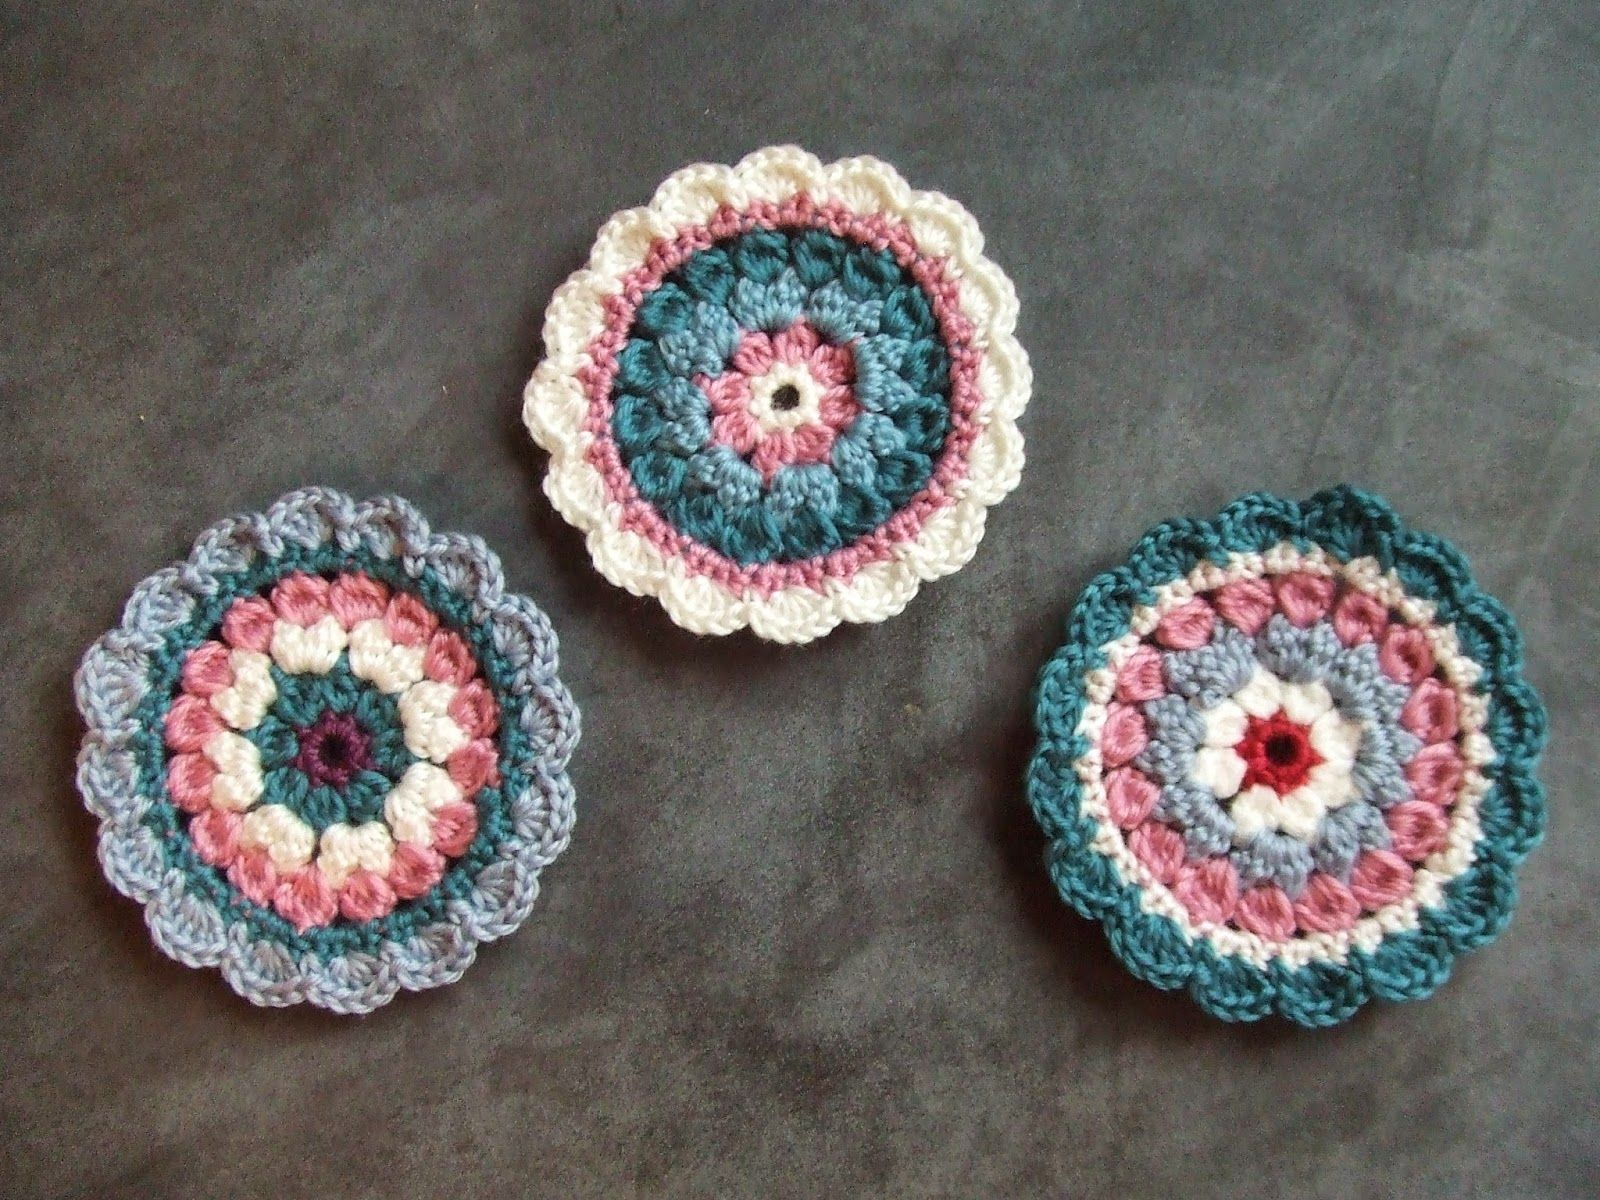 My world of crochet: More Mini Mandalas - FREE Patterns! | Häkeln ...